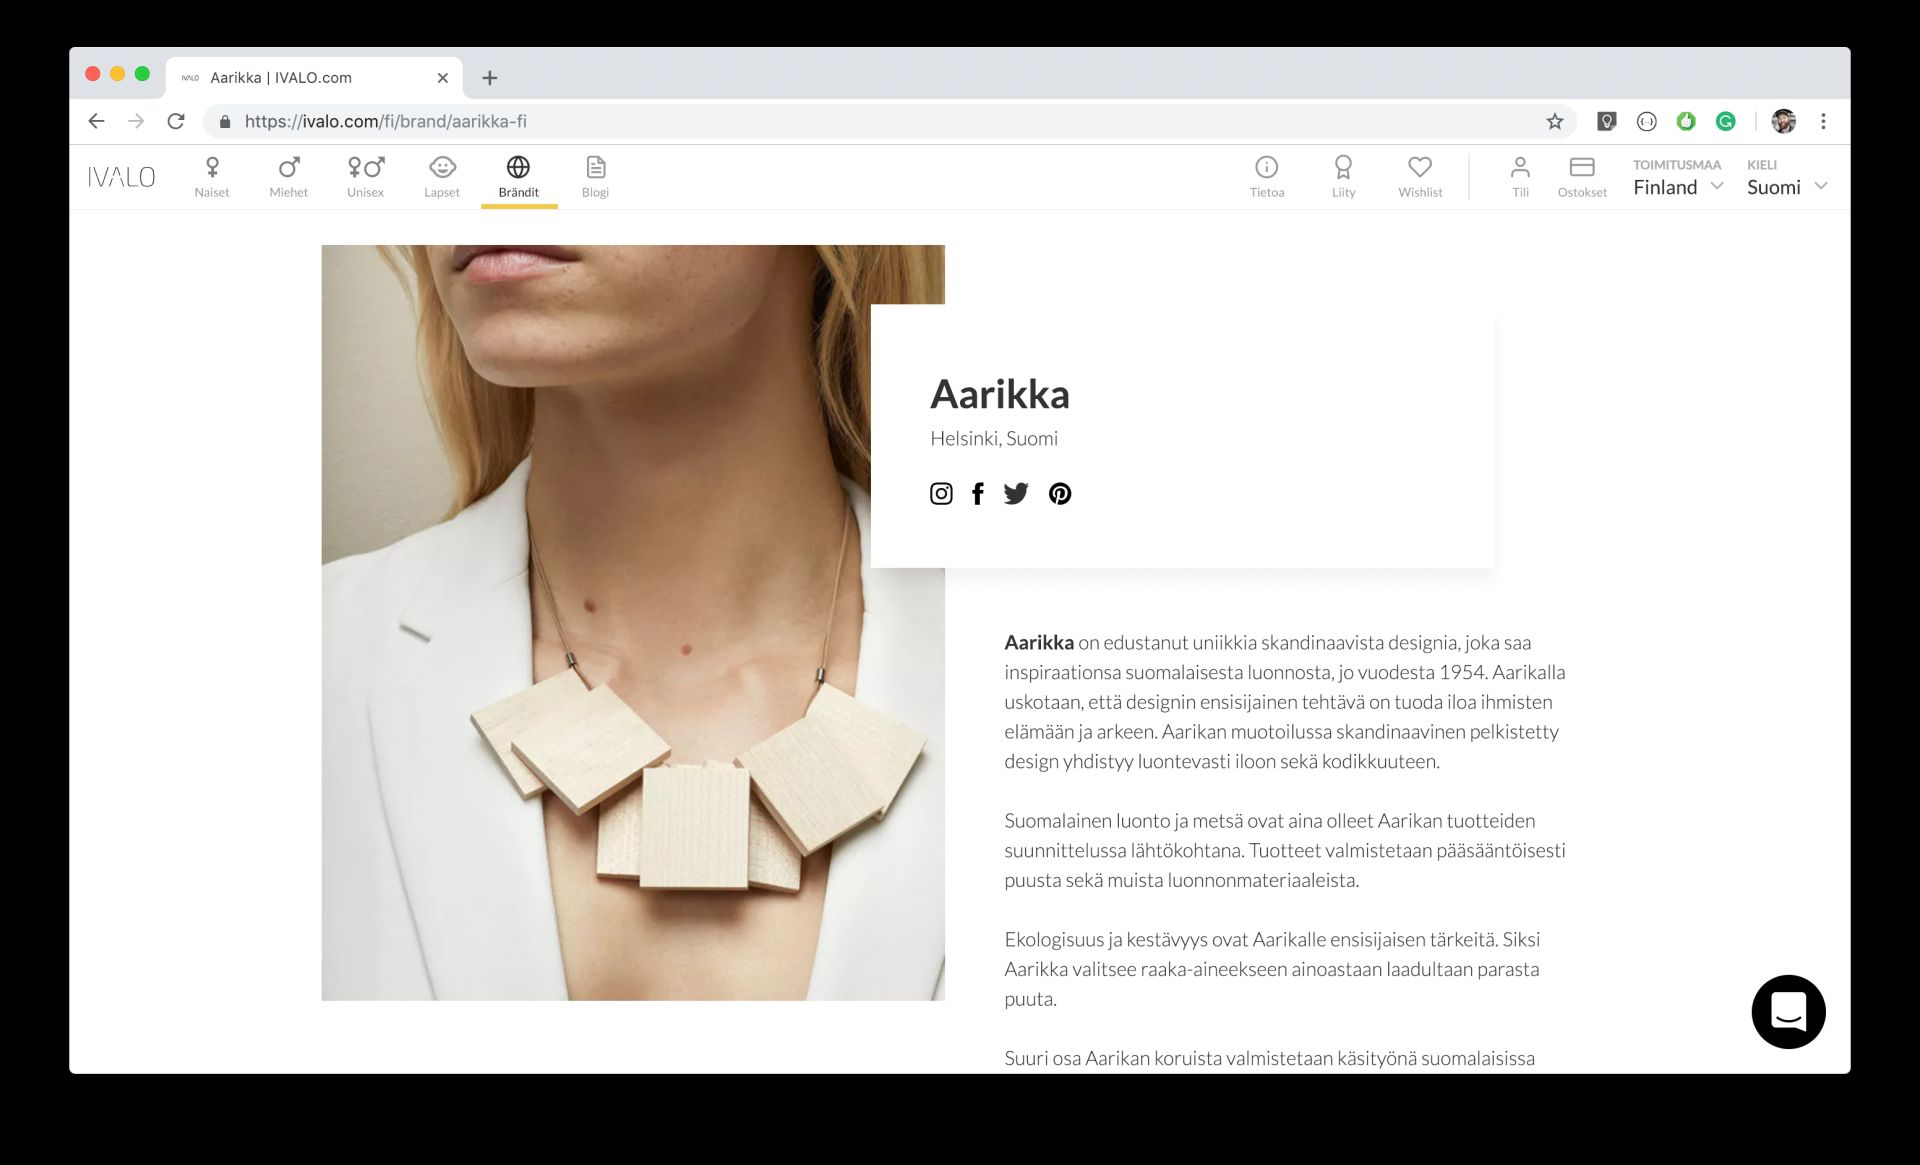 IVALO Marketplace for ethical and emerging fashion